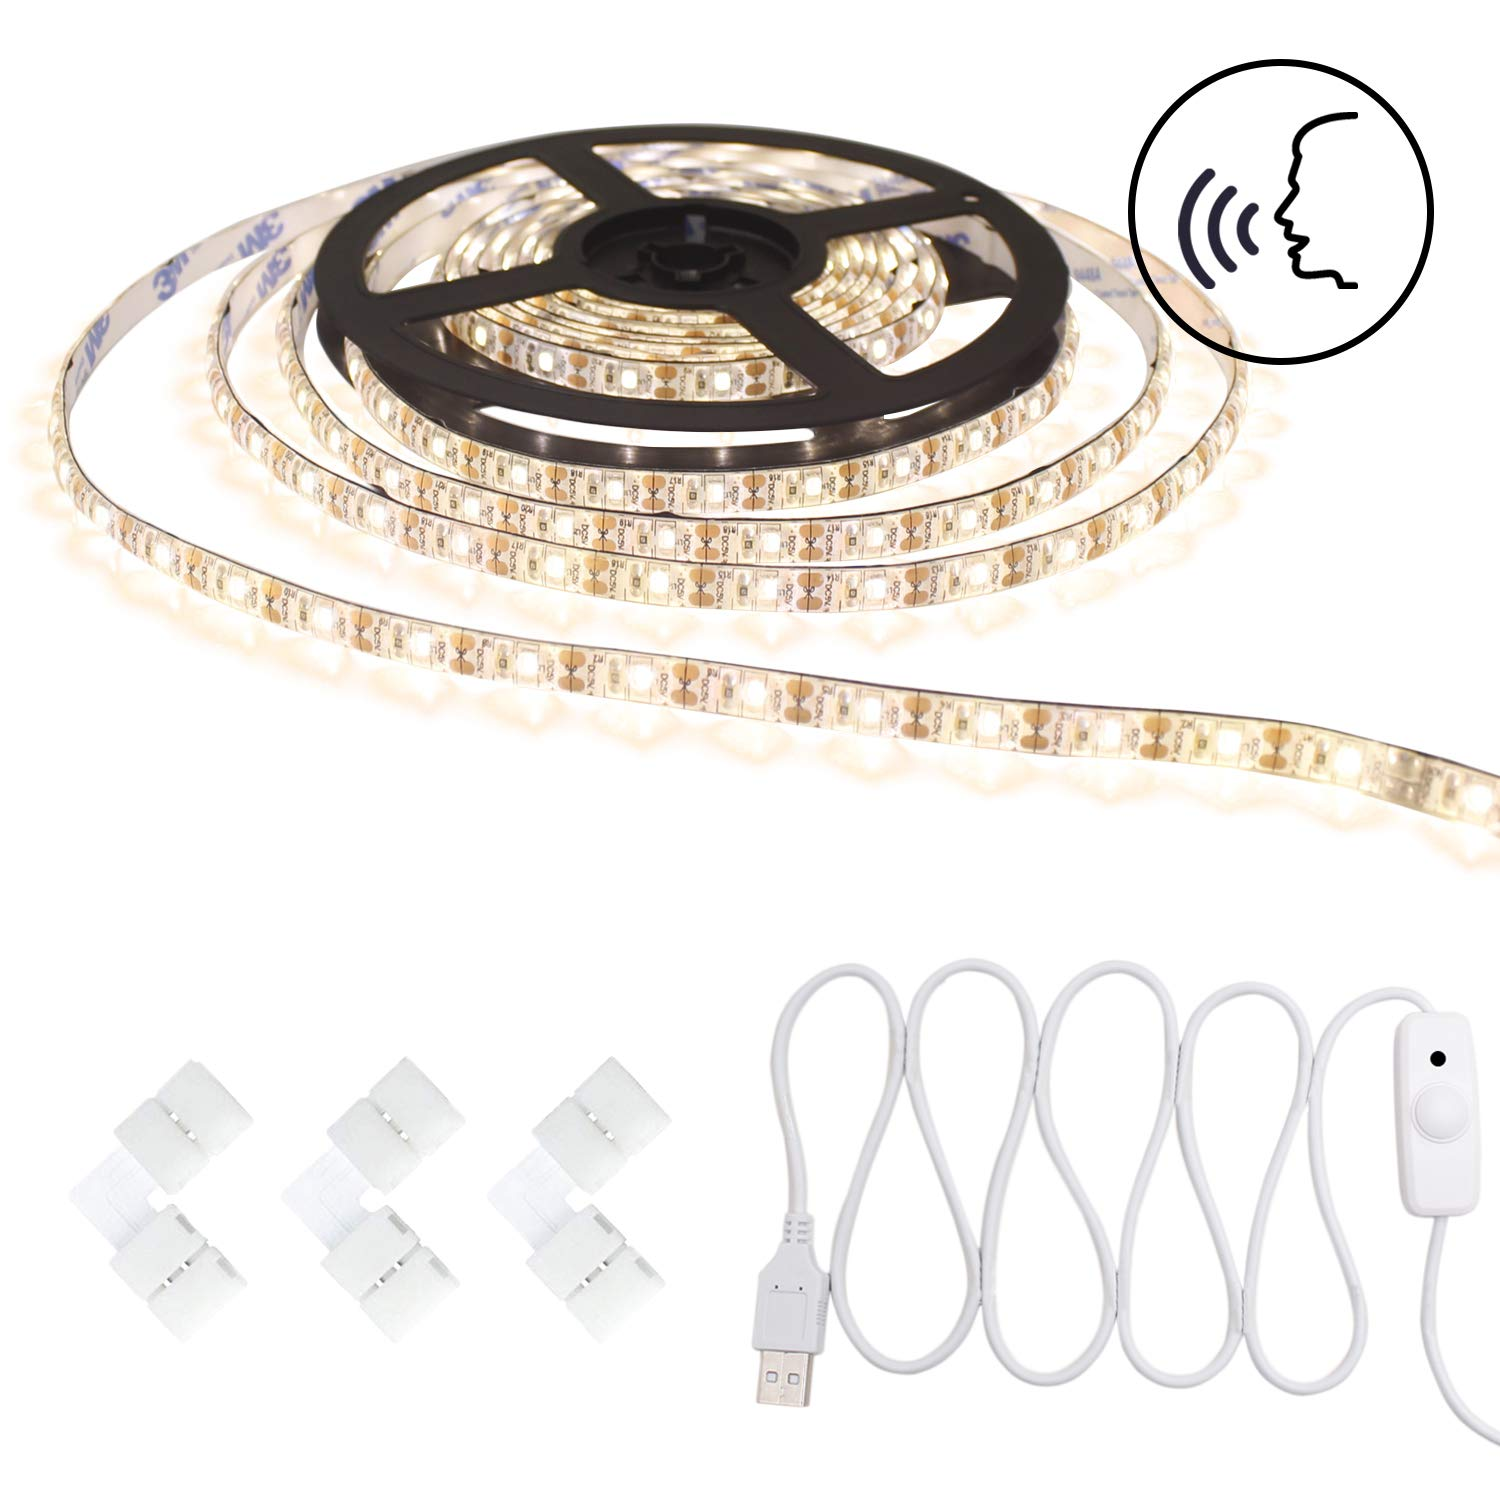 Smart Voice Control Led Strip Light Waterproof Warm White Stepless Dimmable USB 5v Tape Rope Light 16.4ft/5m 300 Units SMD 3528 LEDs for Makeup, Party, Decoration by Tronsnic (Warm White)